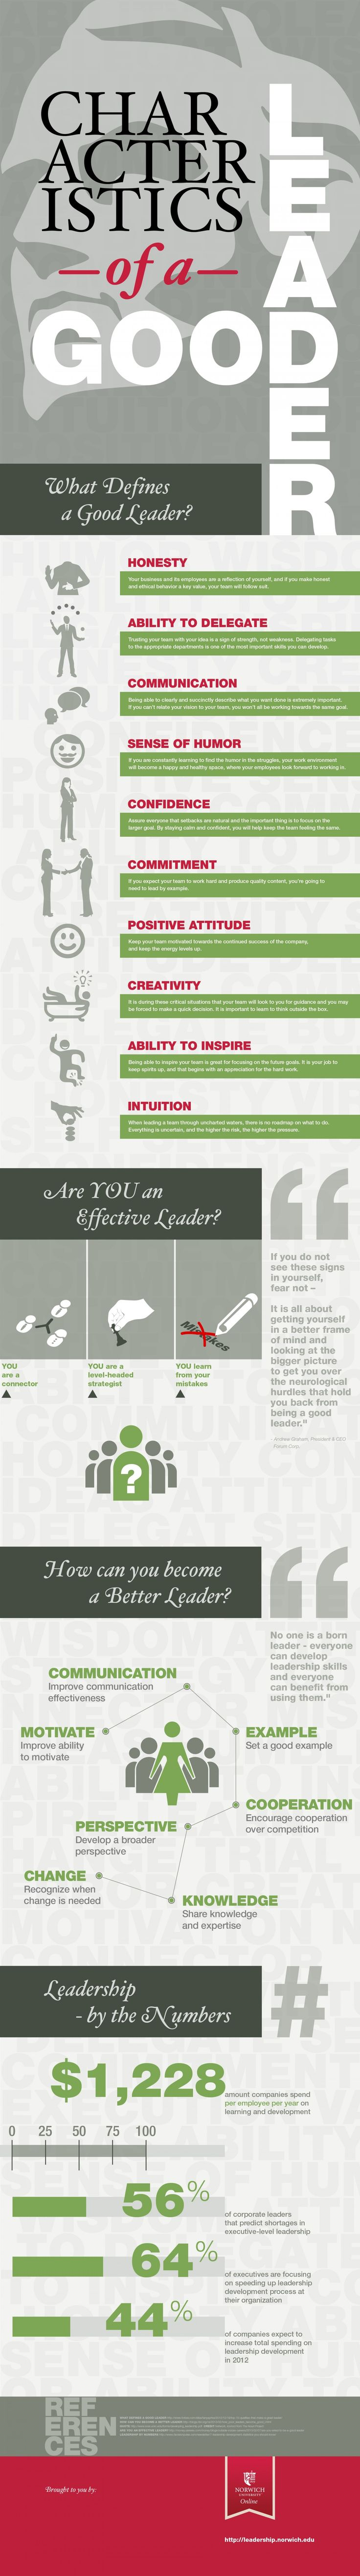 a #professional is or recognizes a leader: Characteristics of a Good #Leader #Infographic